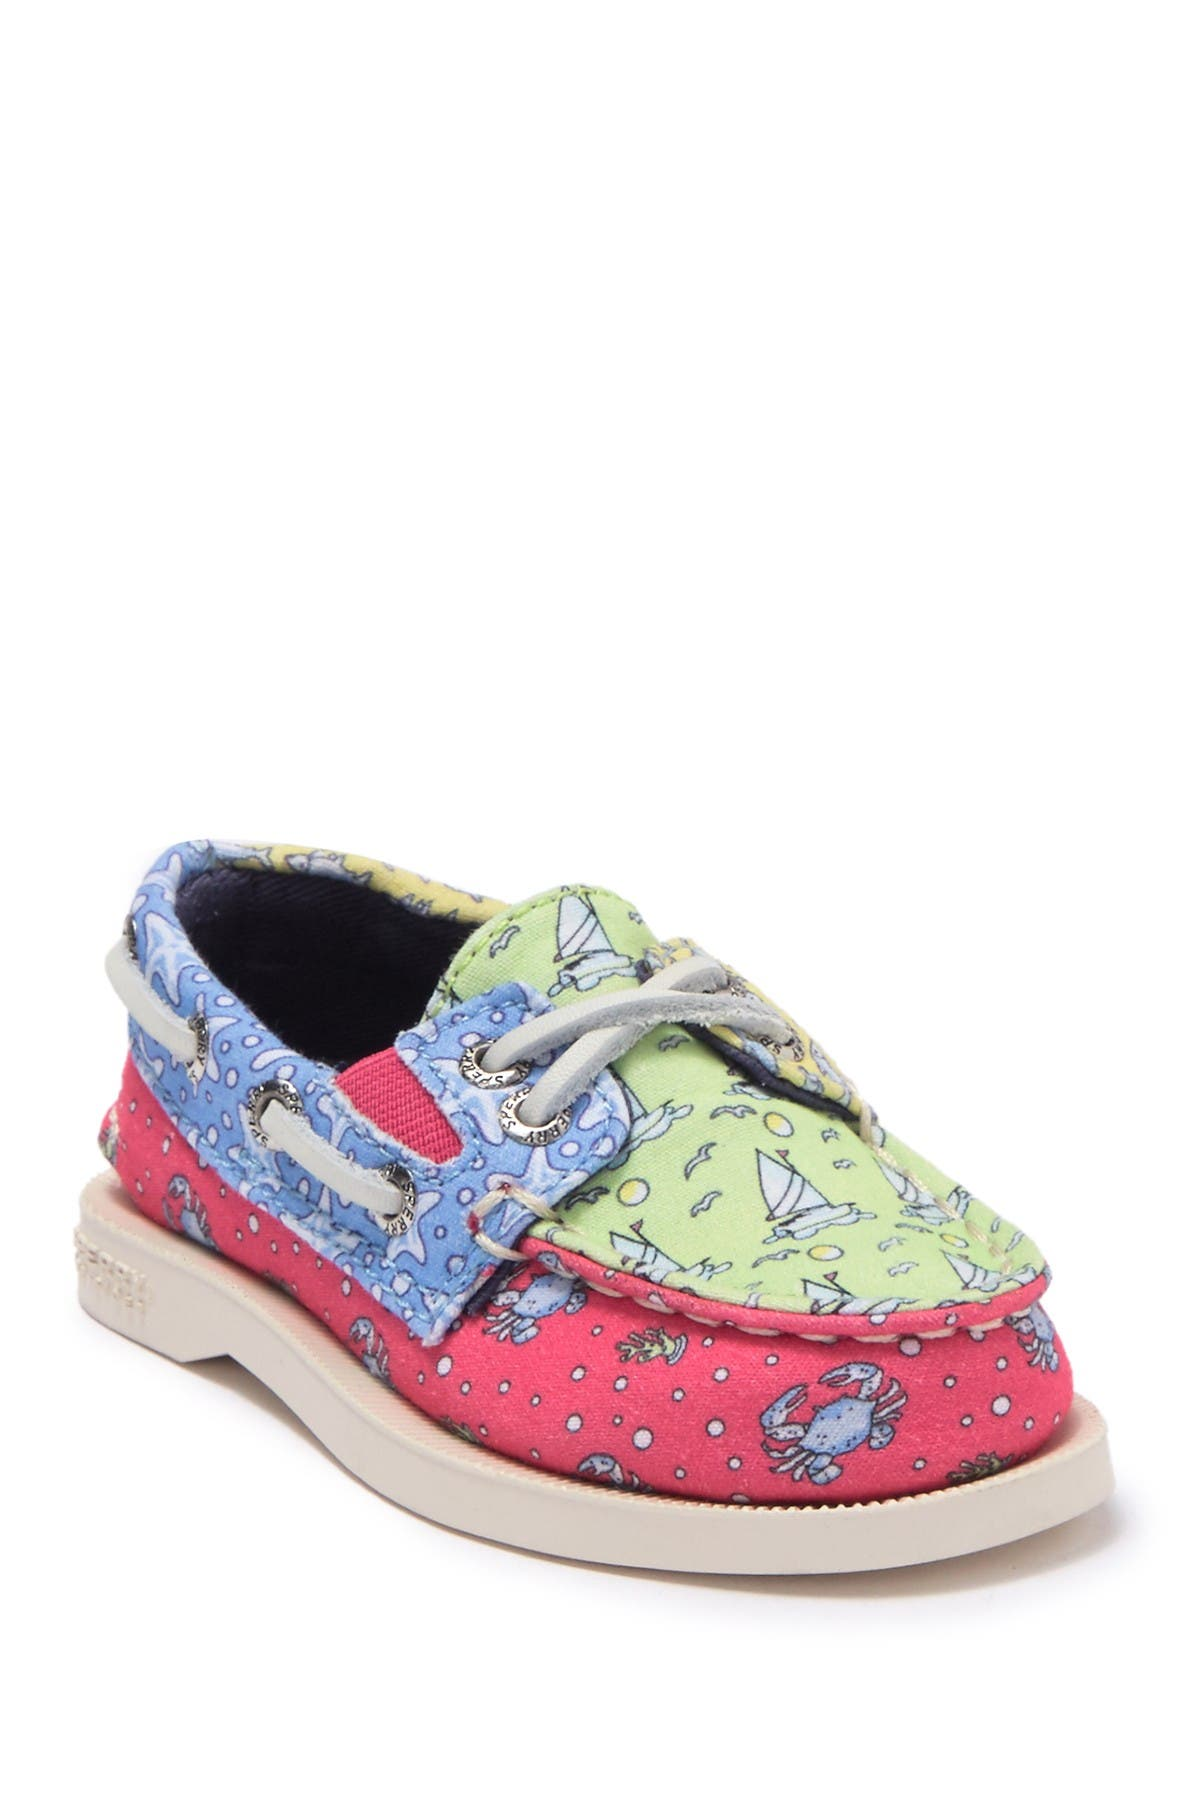 Image of Sperry x Vineyard Vines Authentic Original Boat Shoe